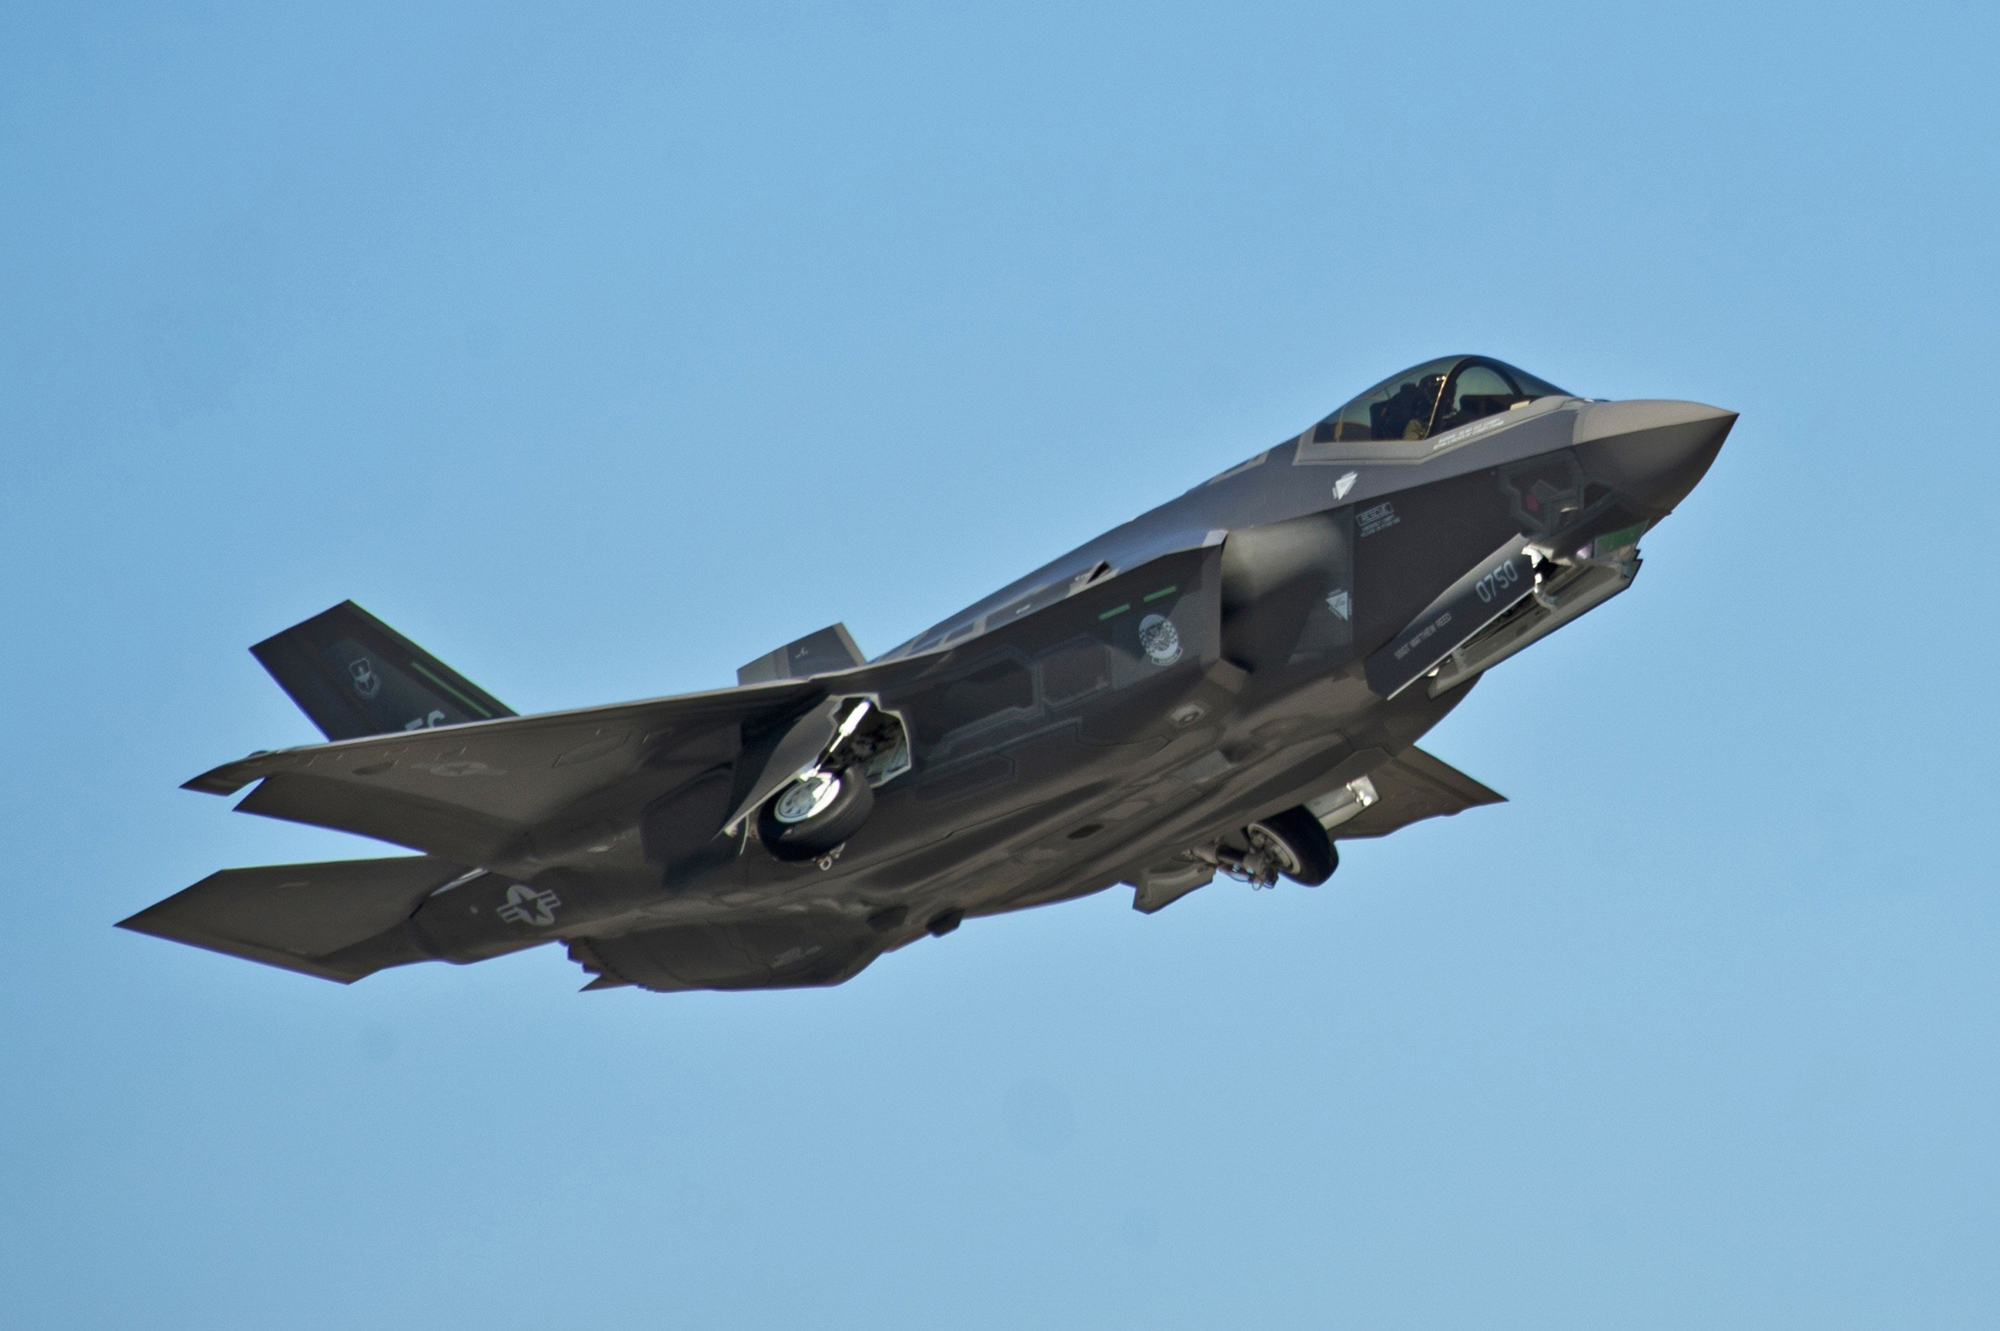 An F-35A Lightning II Joint Strike Fighter takes off on a training sortie at Eglin Air Force Base, Florida in 2012.